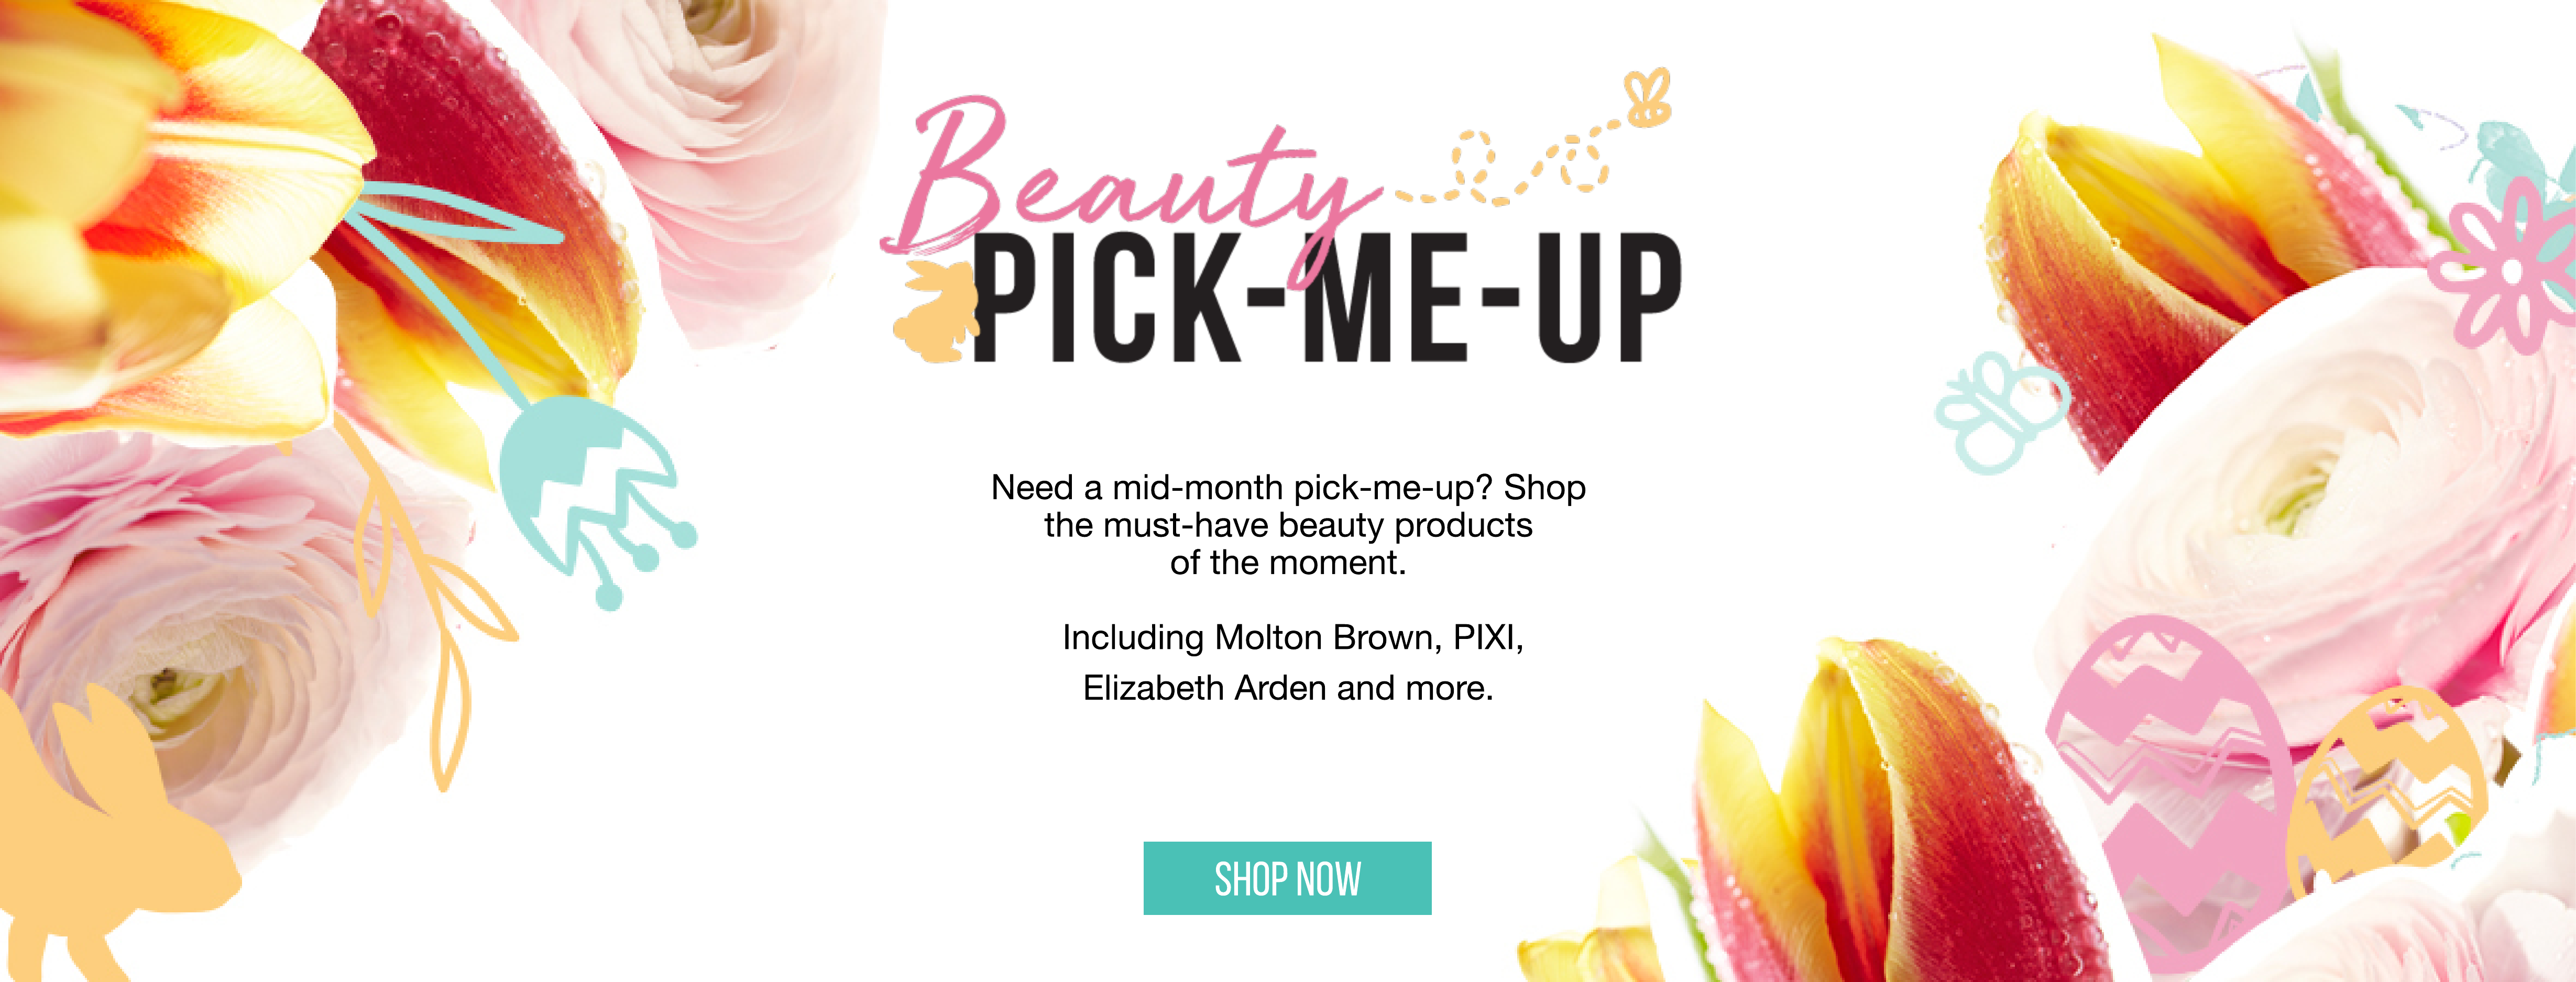 Beauty Pick-Me-Up: | Need a mid-month pick-me-up? Shop the must-have beauty products of the moment.